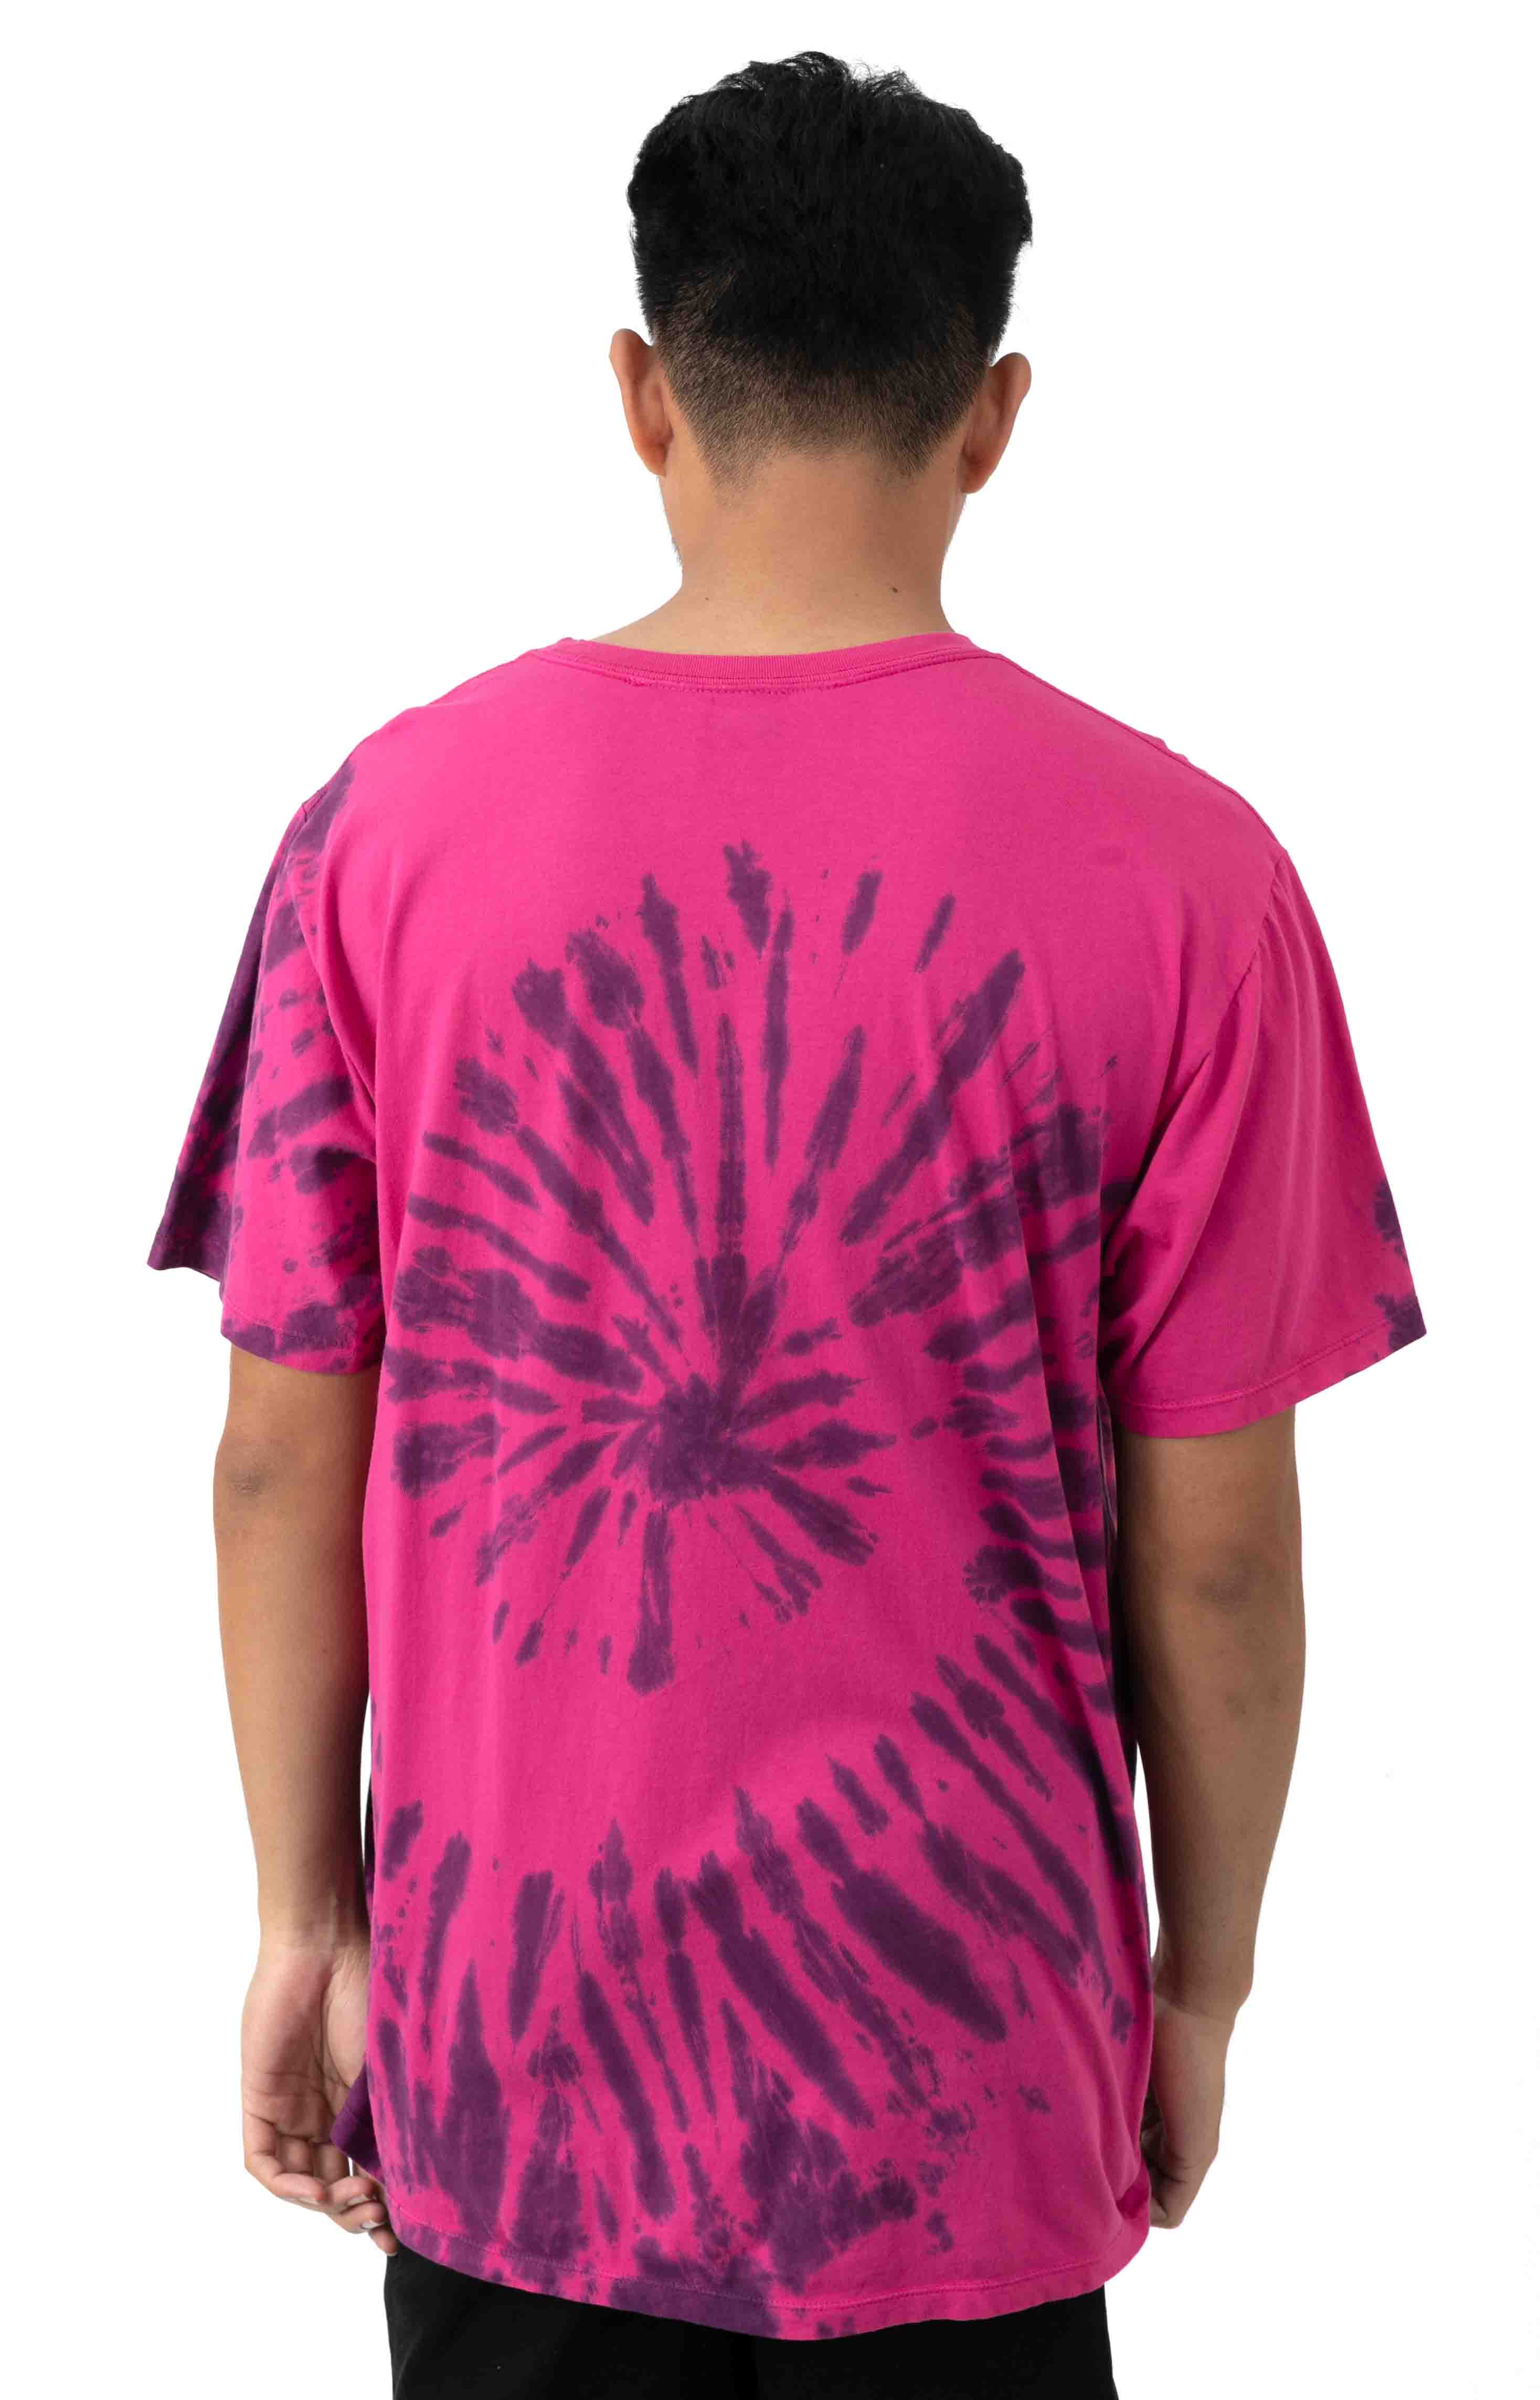 Viral T-Shirt - Hot Pink 3